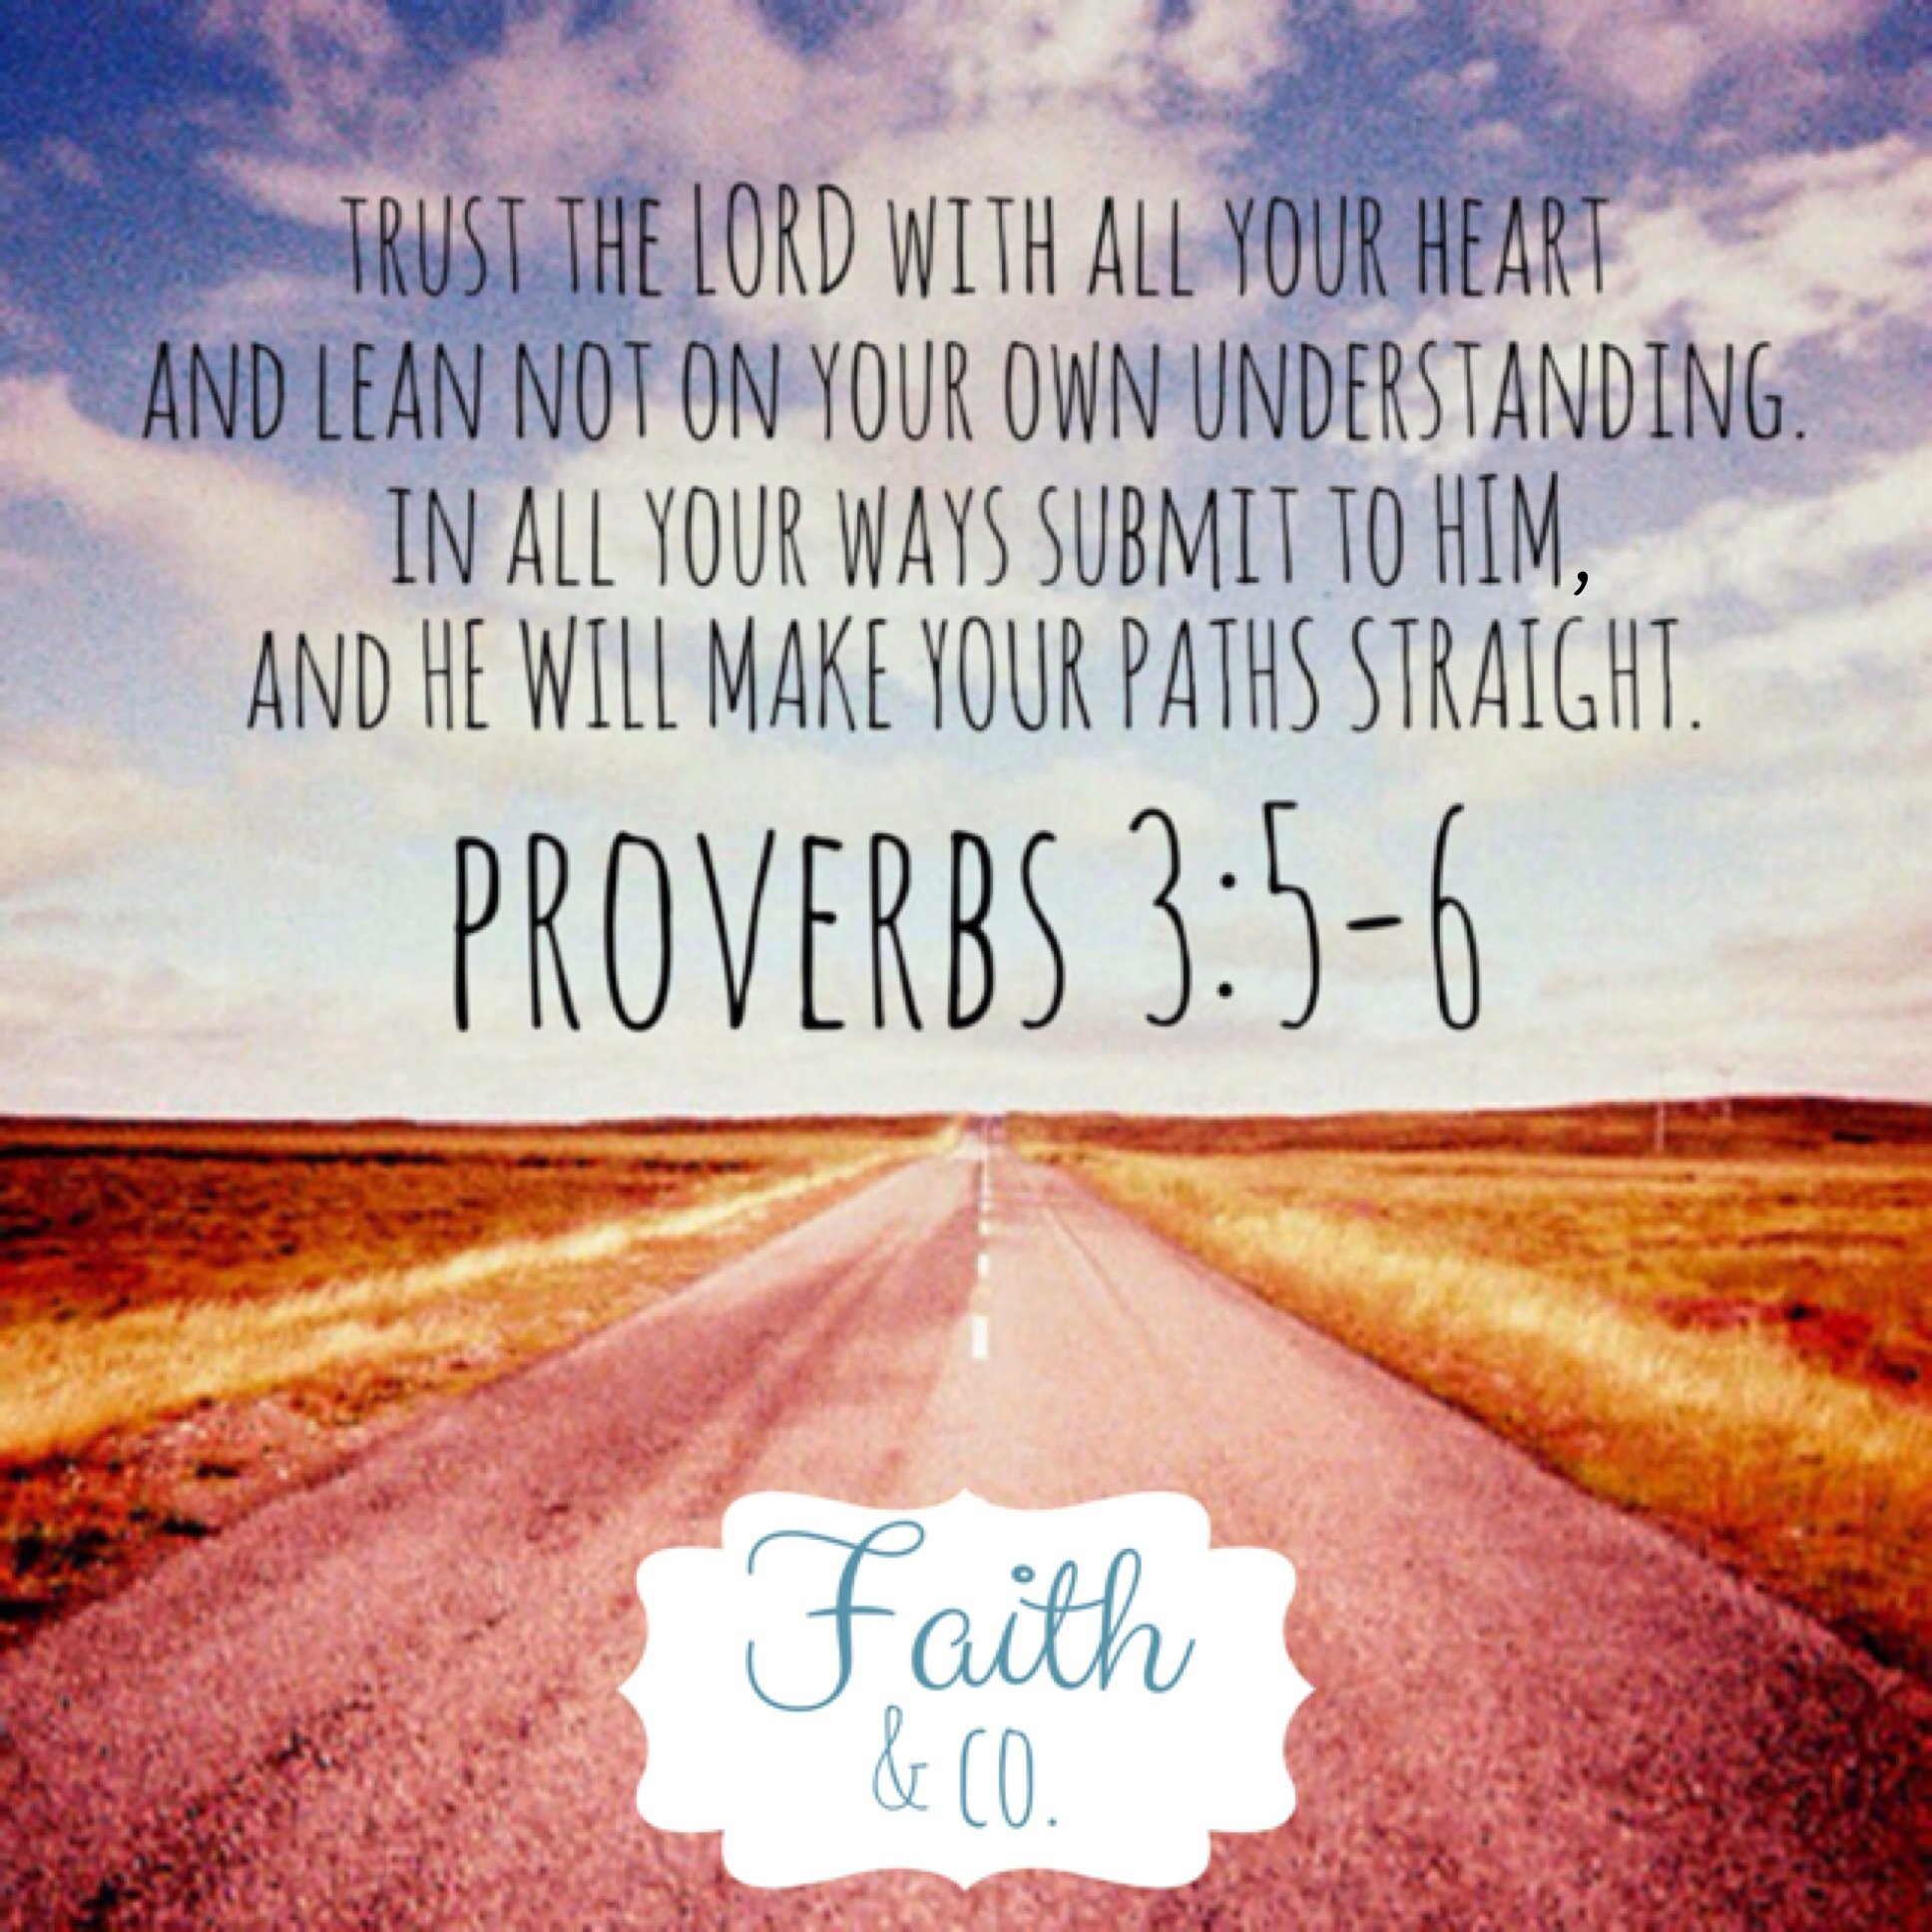 Facebook Timeline Cover Life Quotes: Instagram Bible Quotes Facebook Covers. QuotesGram